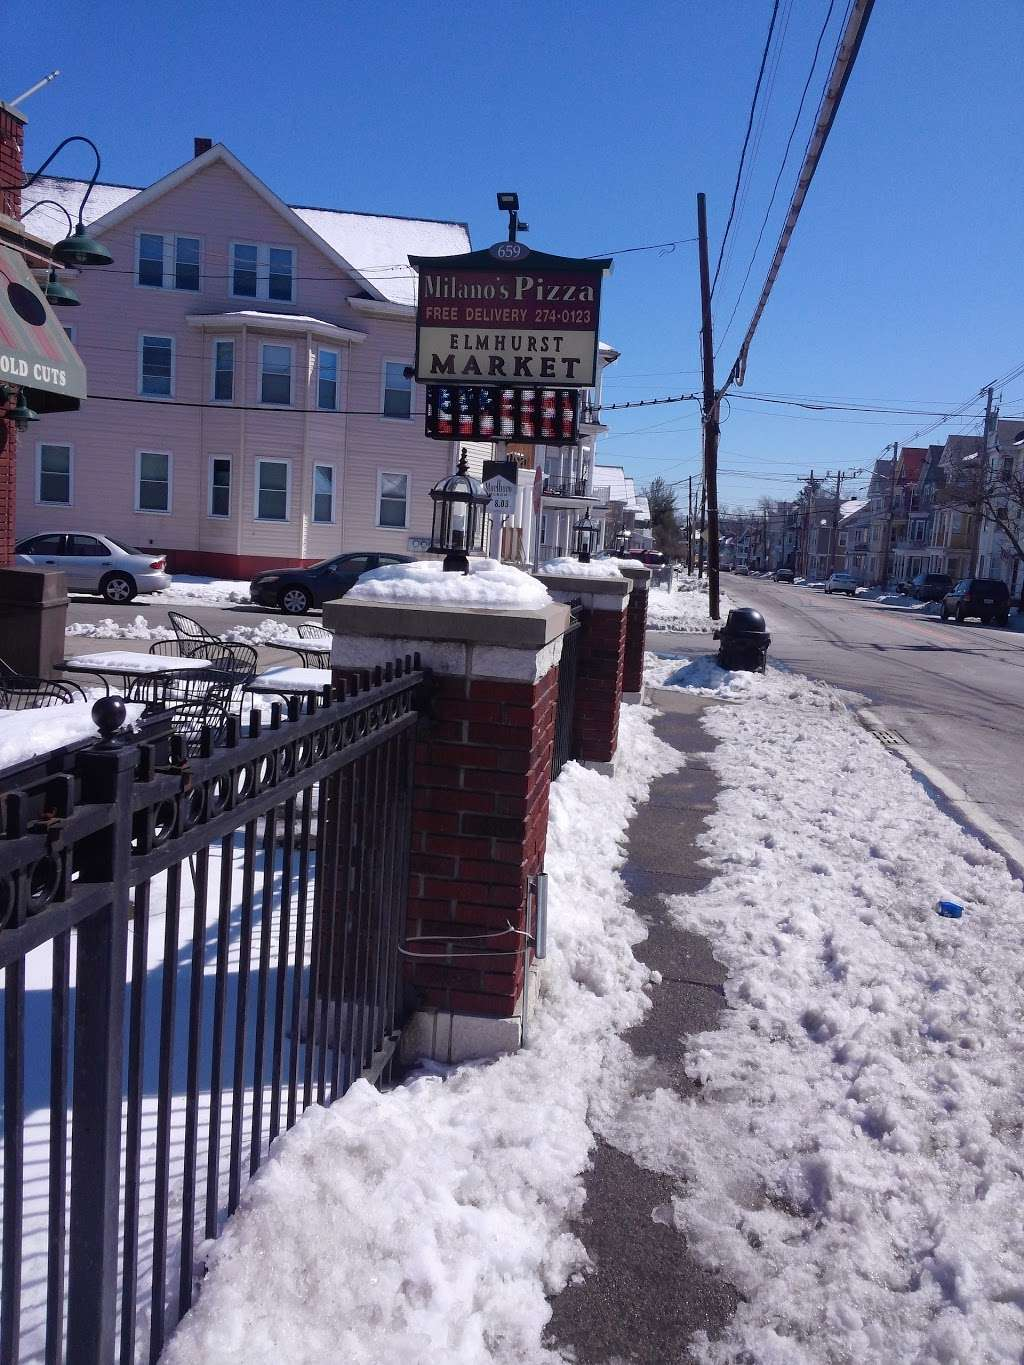 Milanos Pizza - meal delivery  | Photo 10 of 10 | Address: 659 Smith St, Providence, RI 02908, USA | Phone: (401) 274-0123